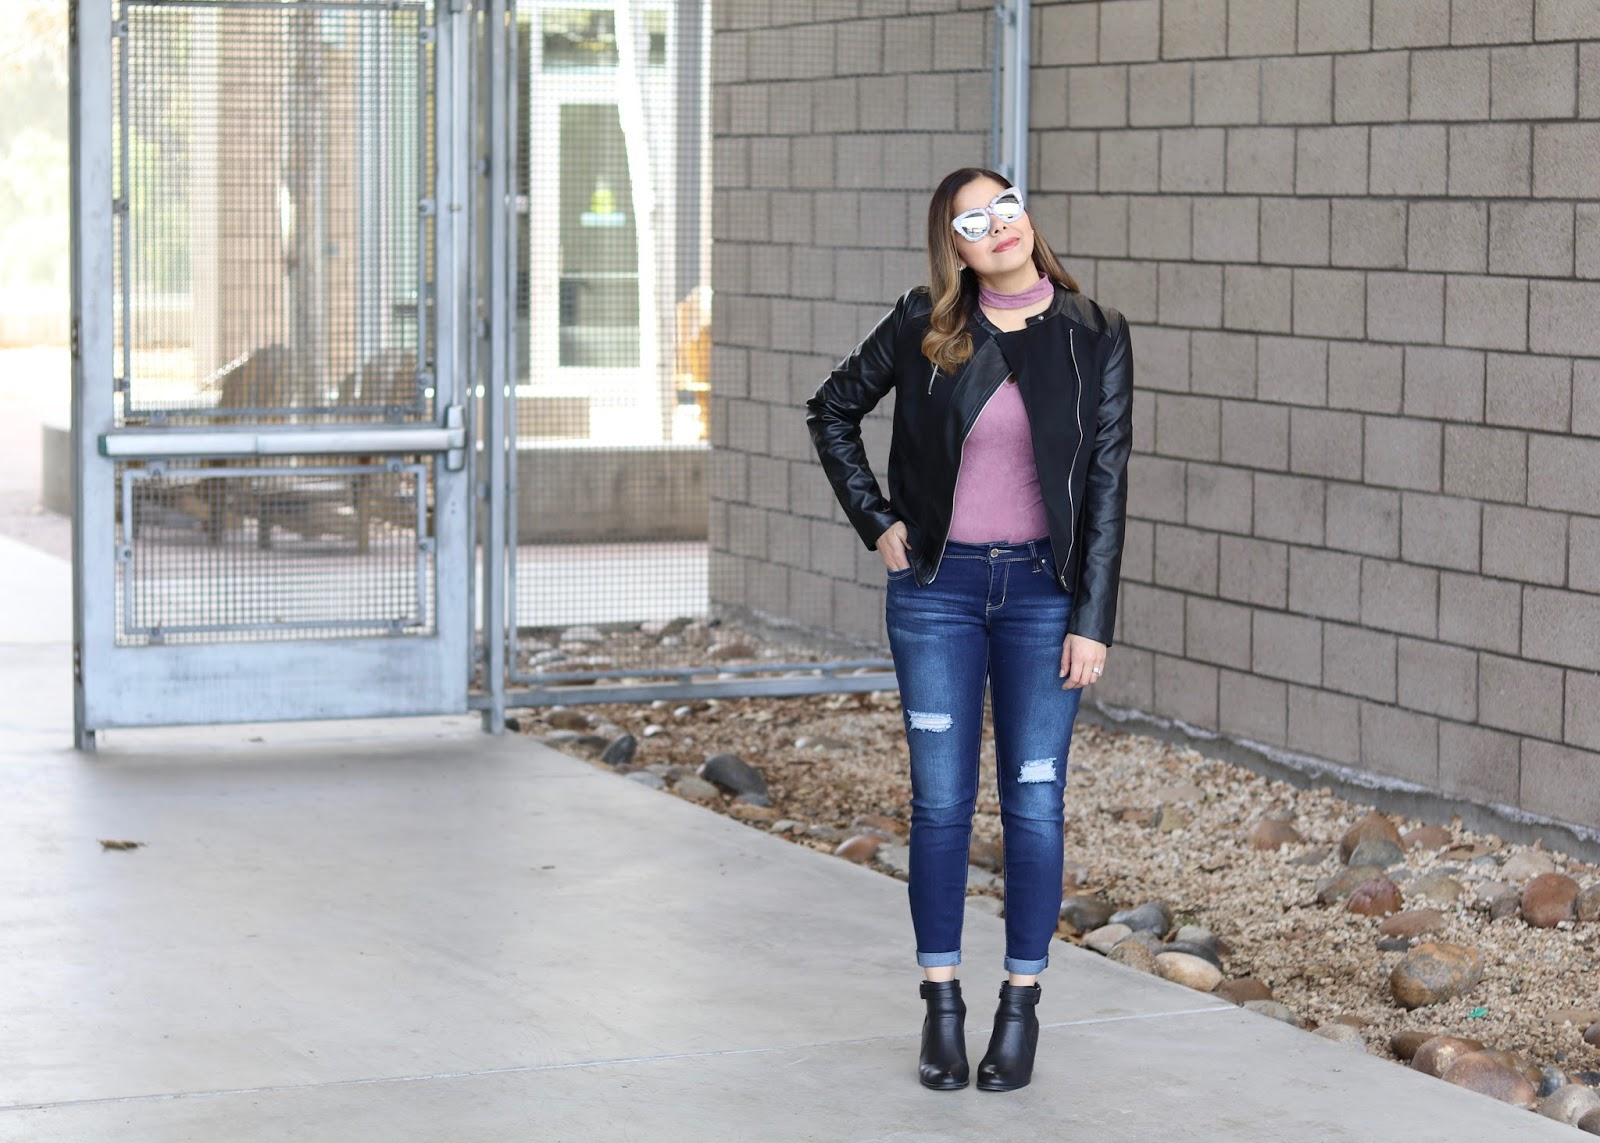 jean outfit with some edge, what to wear in your 30's, agaci outfit